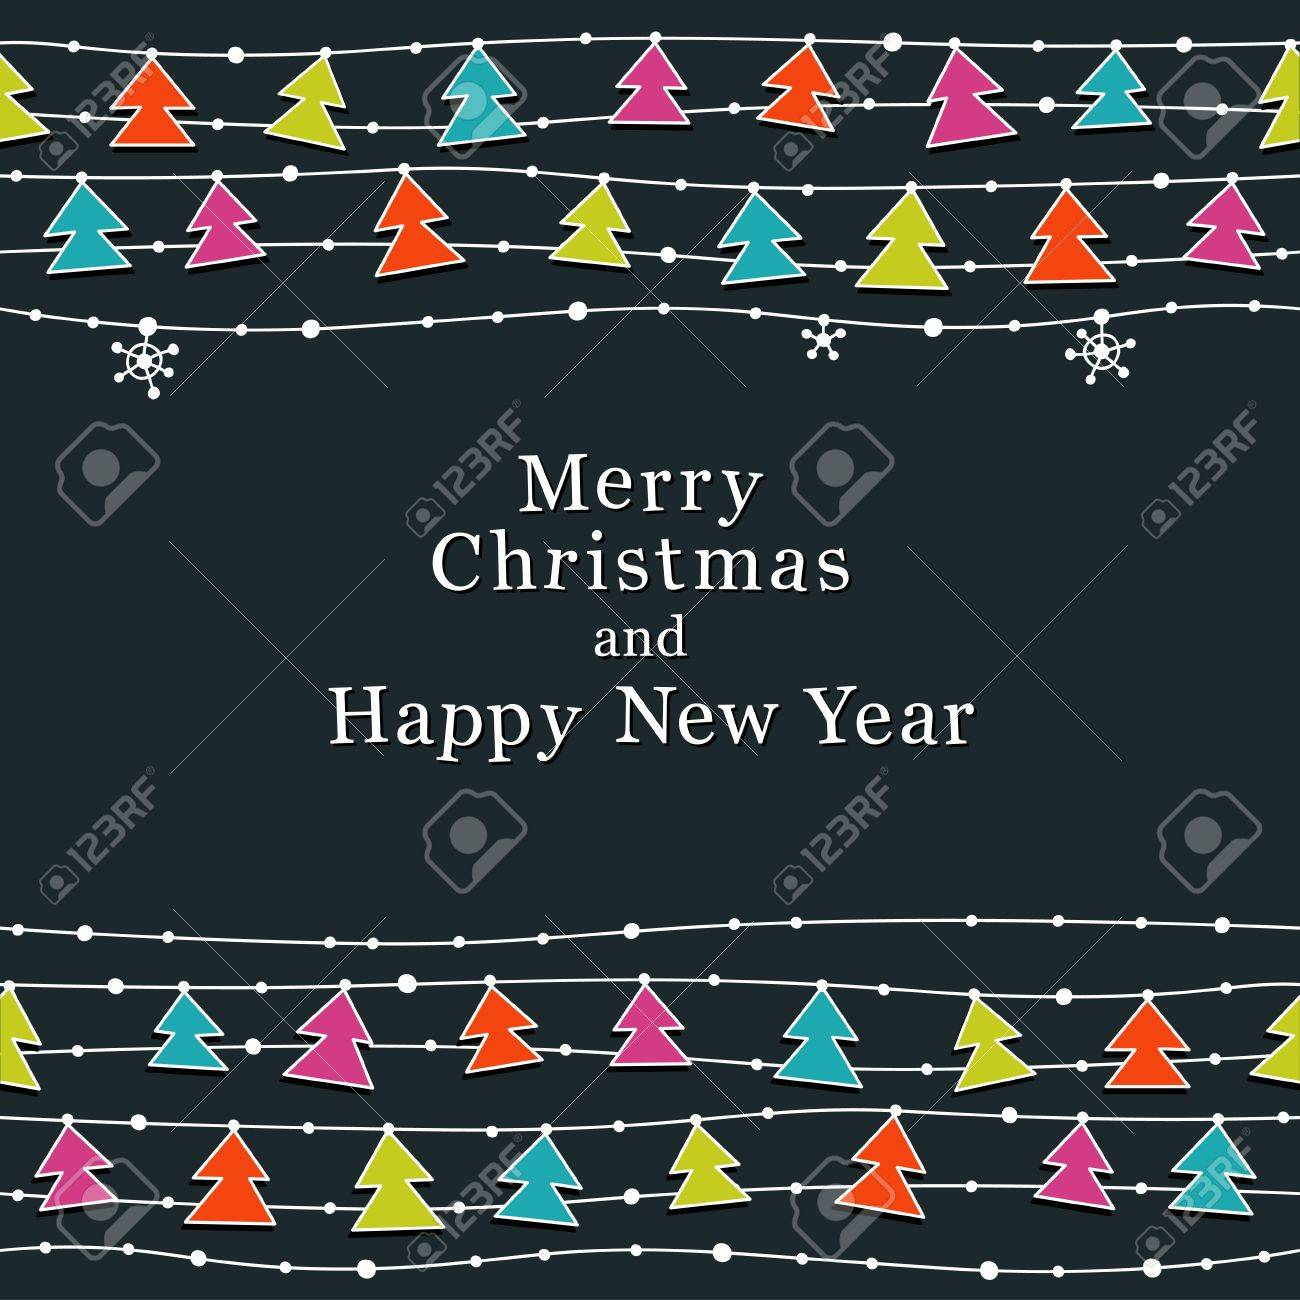 Cute Christmas and New Year card. Seamless borders. Stock Vector - 15802264